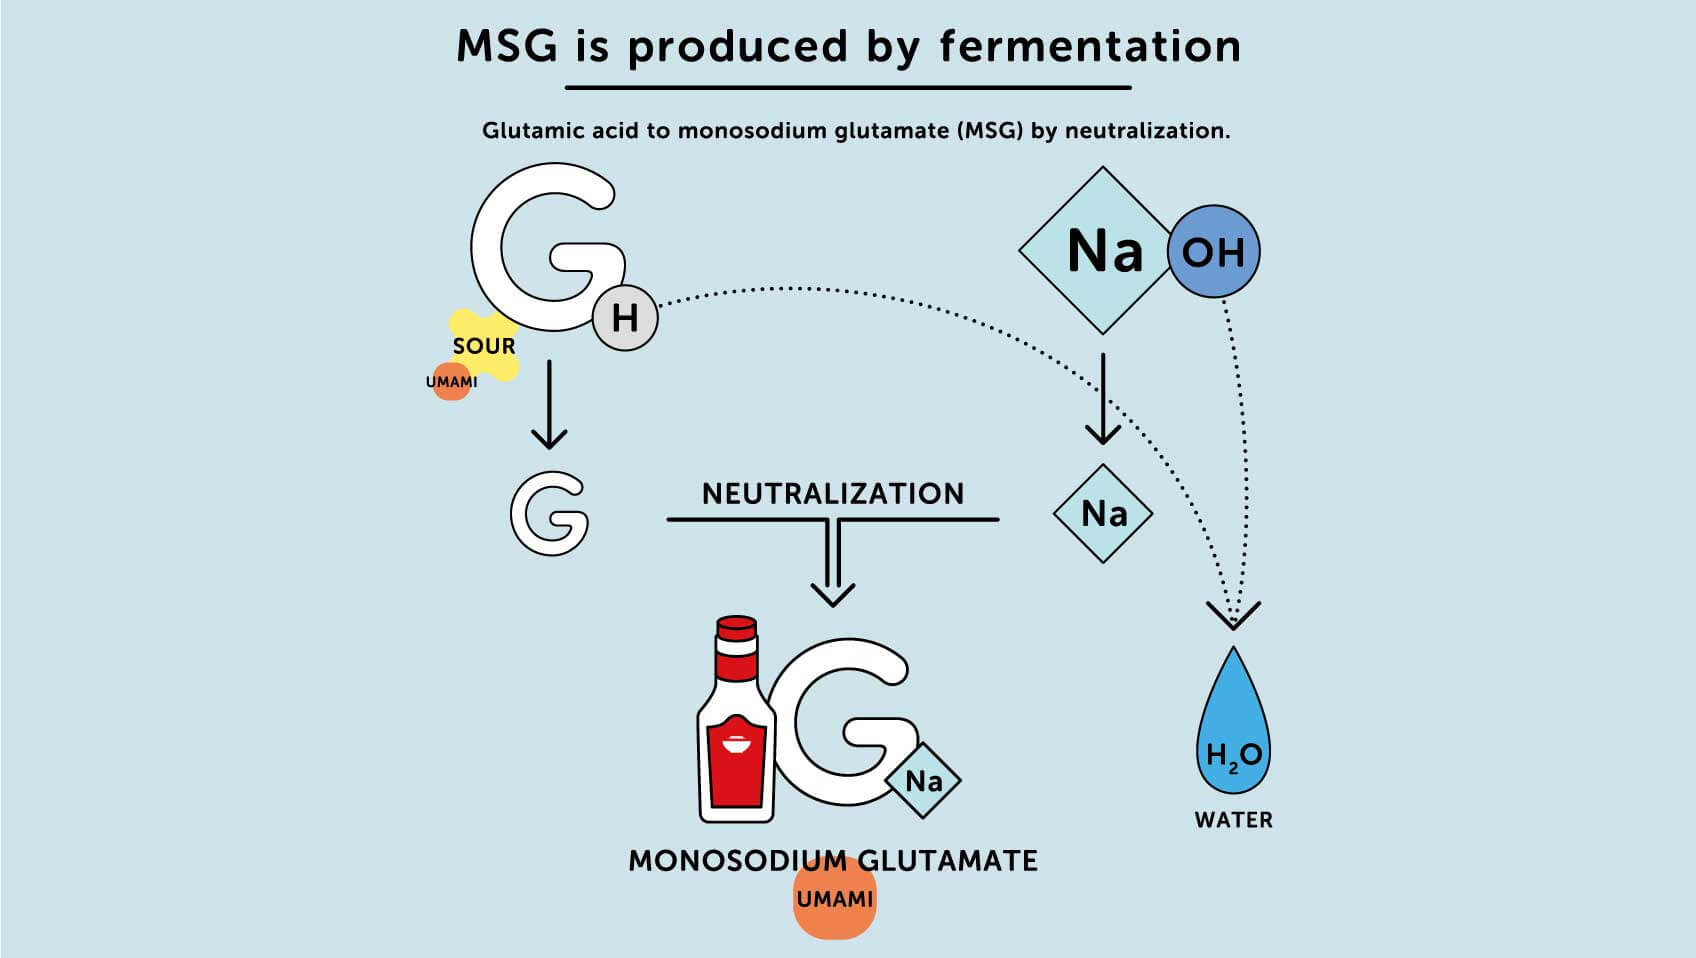 Msg Is Produced By Fermentation